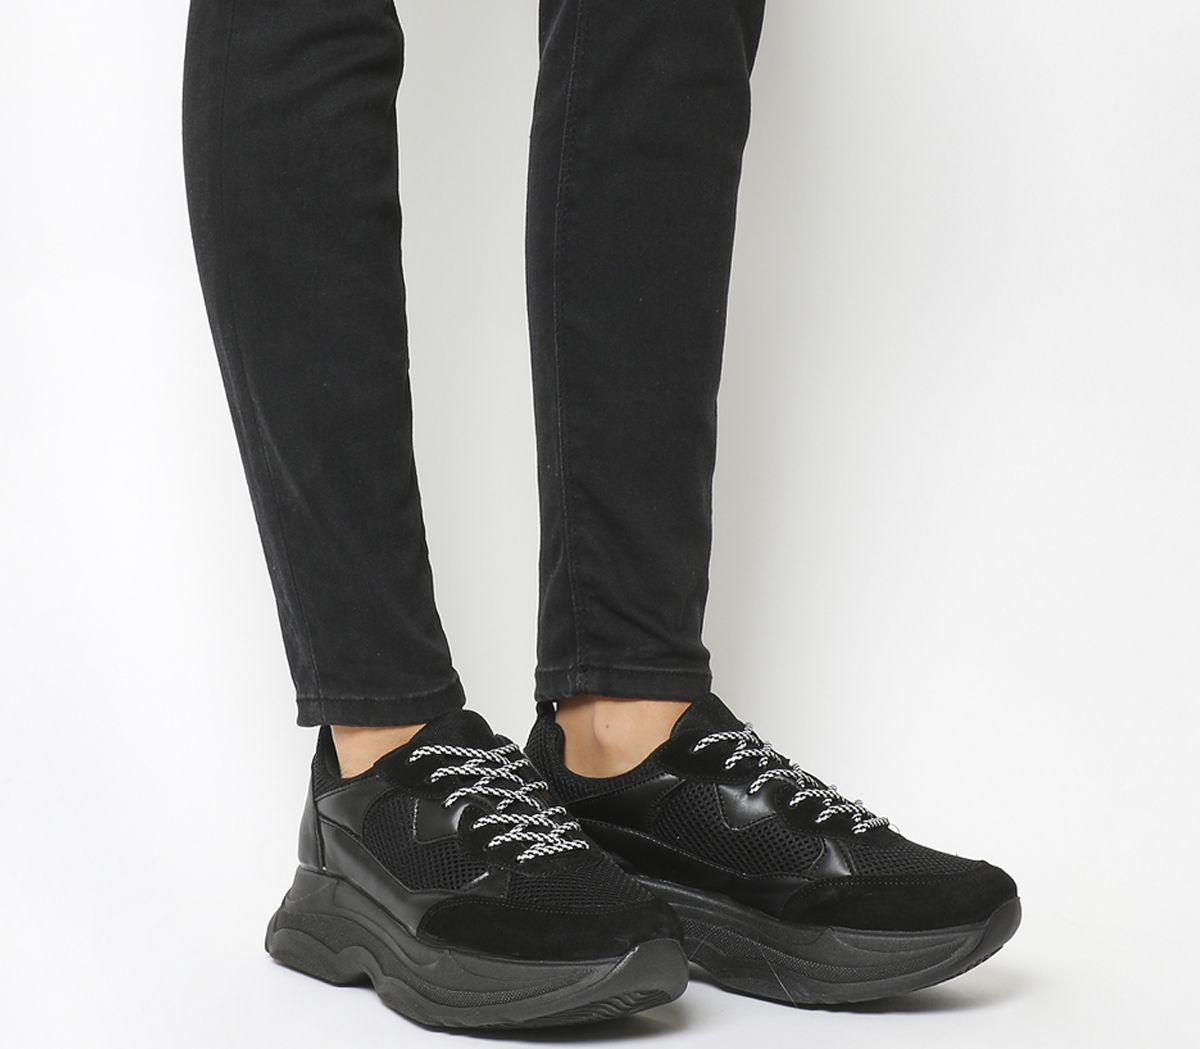 f7d371c10b481 Office Fizzled Chunky Lace Up Trainers Black Material Mix - Hers ...